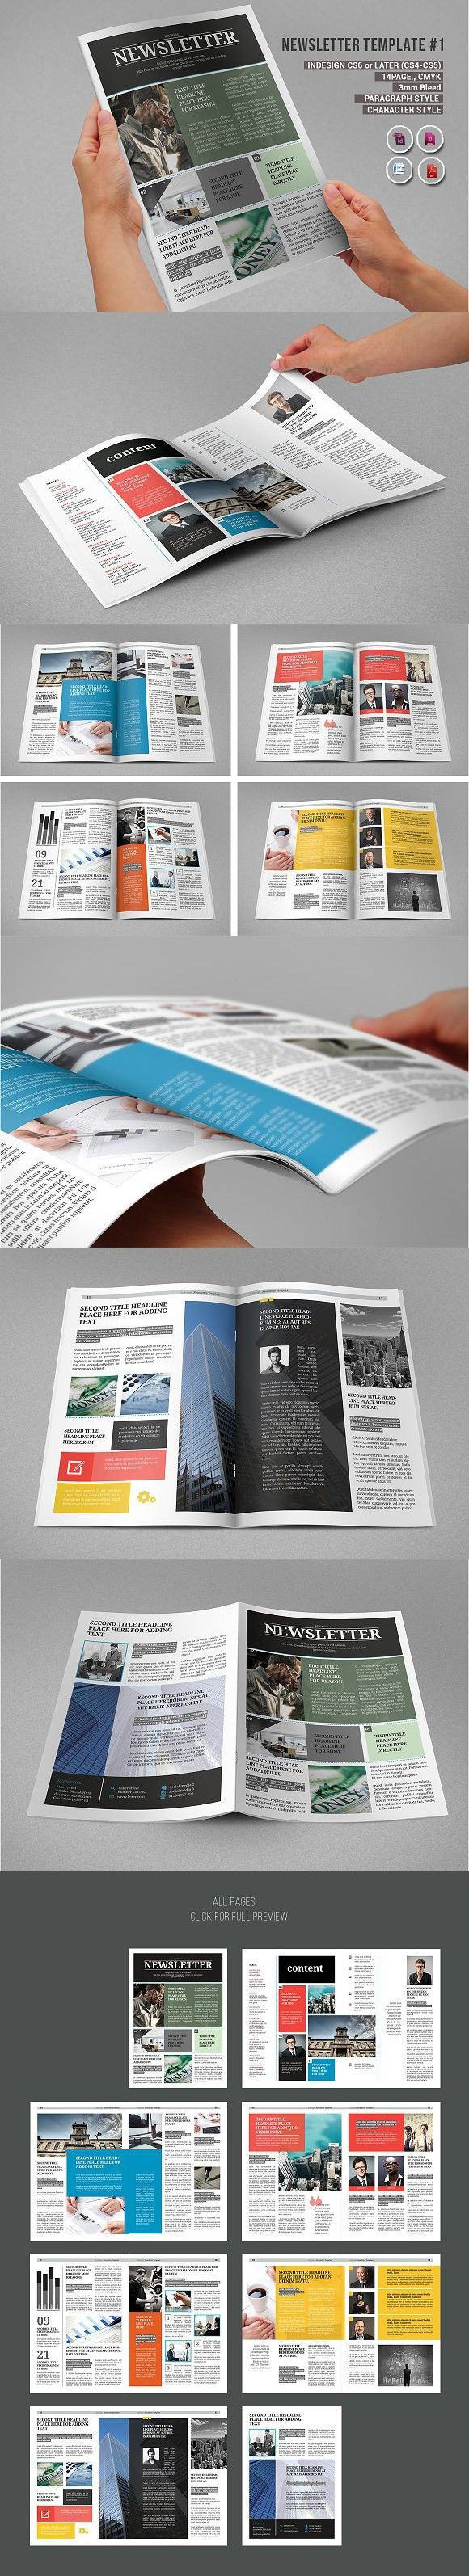 1015 best images about Magazine Templates on Pinterest ...